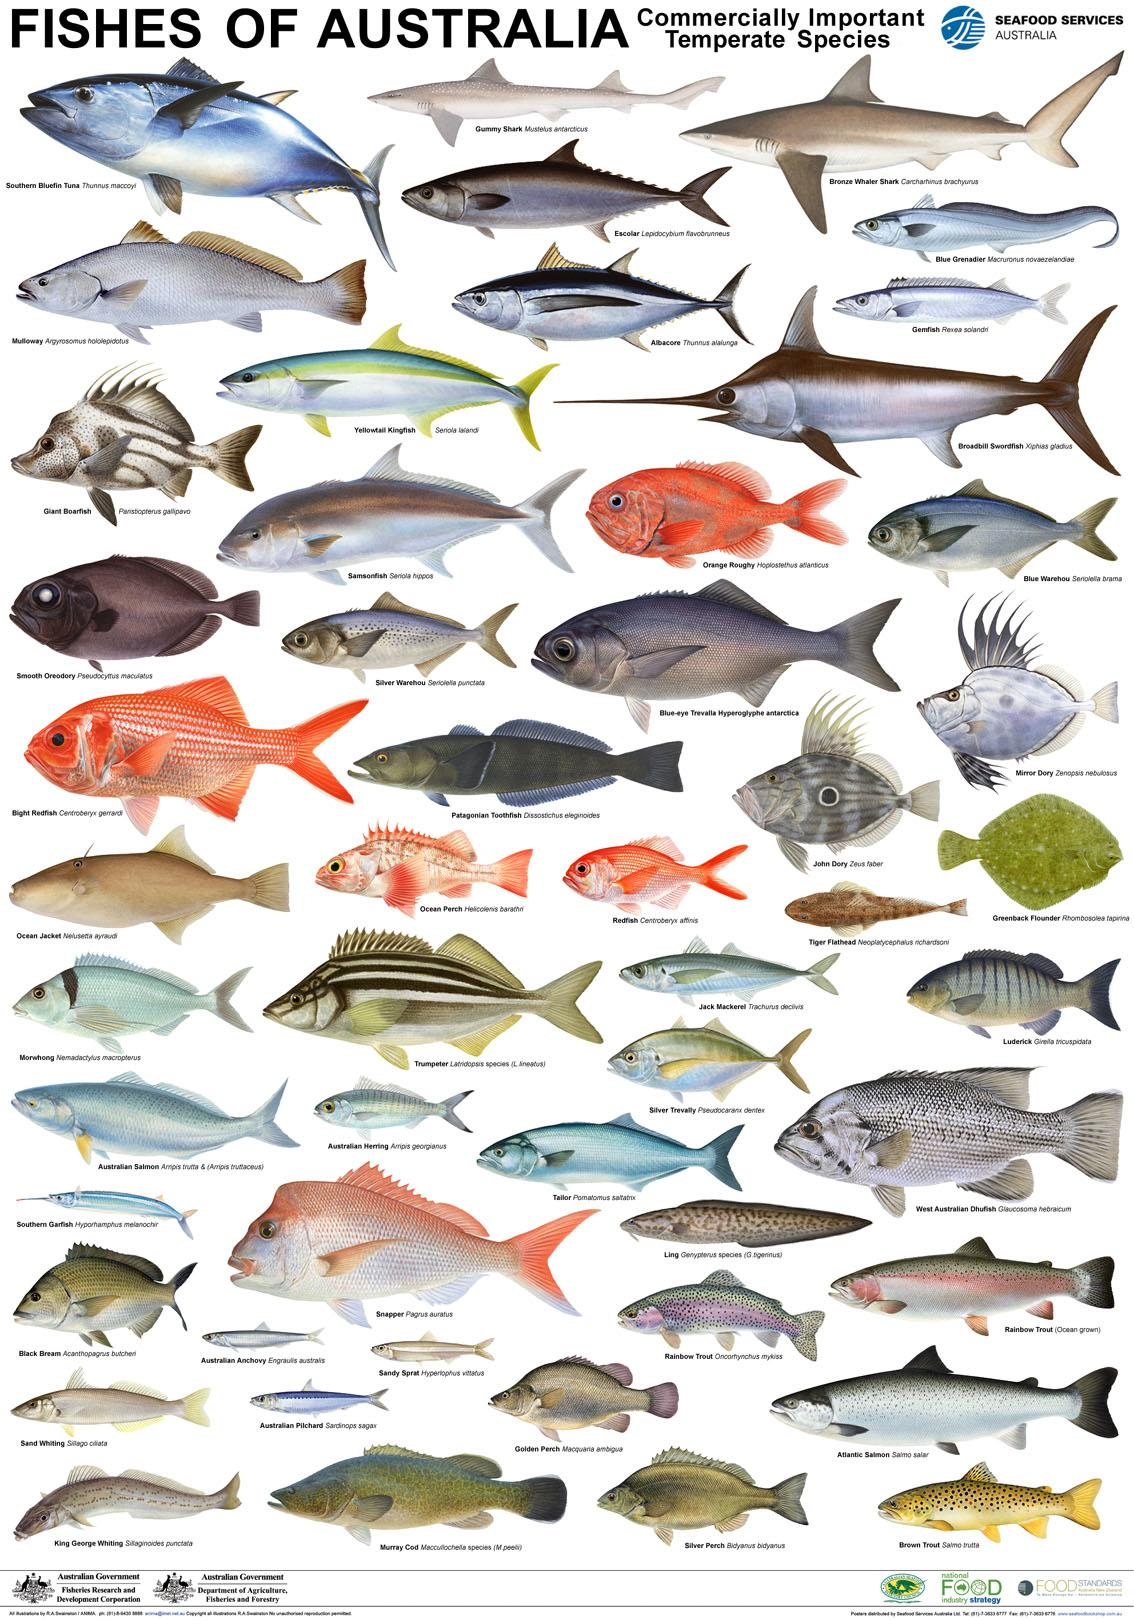 Hd Image Of Nsw R Fish Species Chart Size